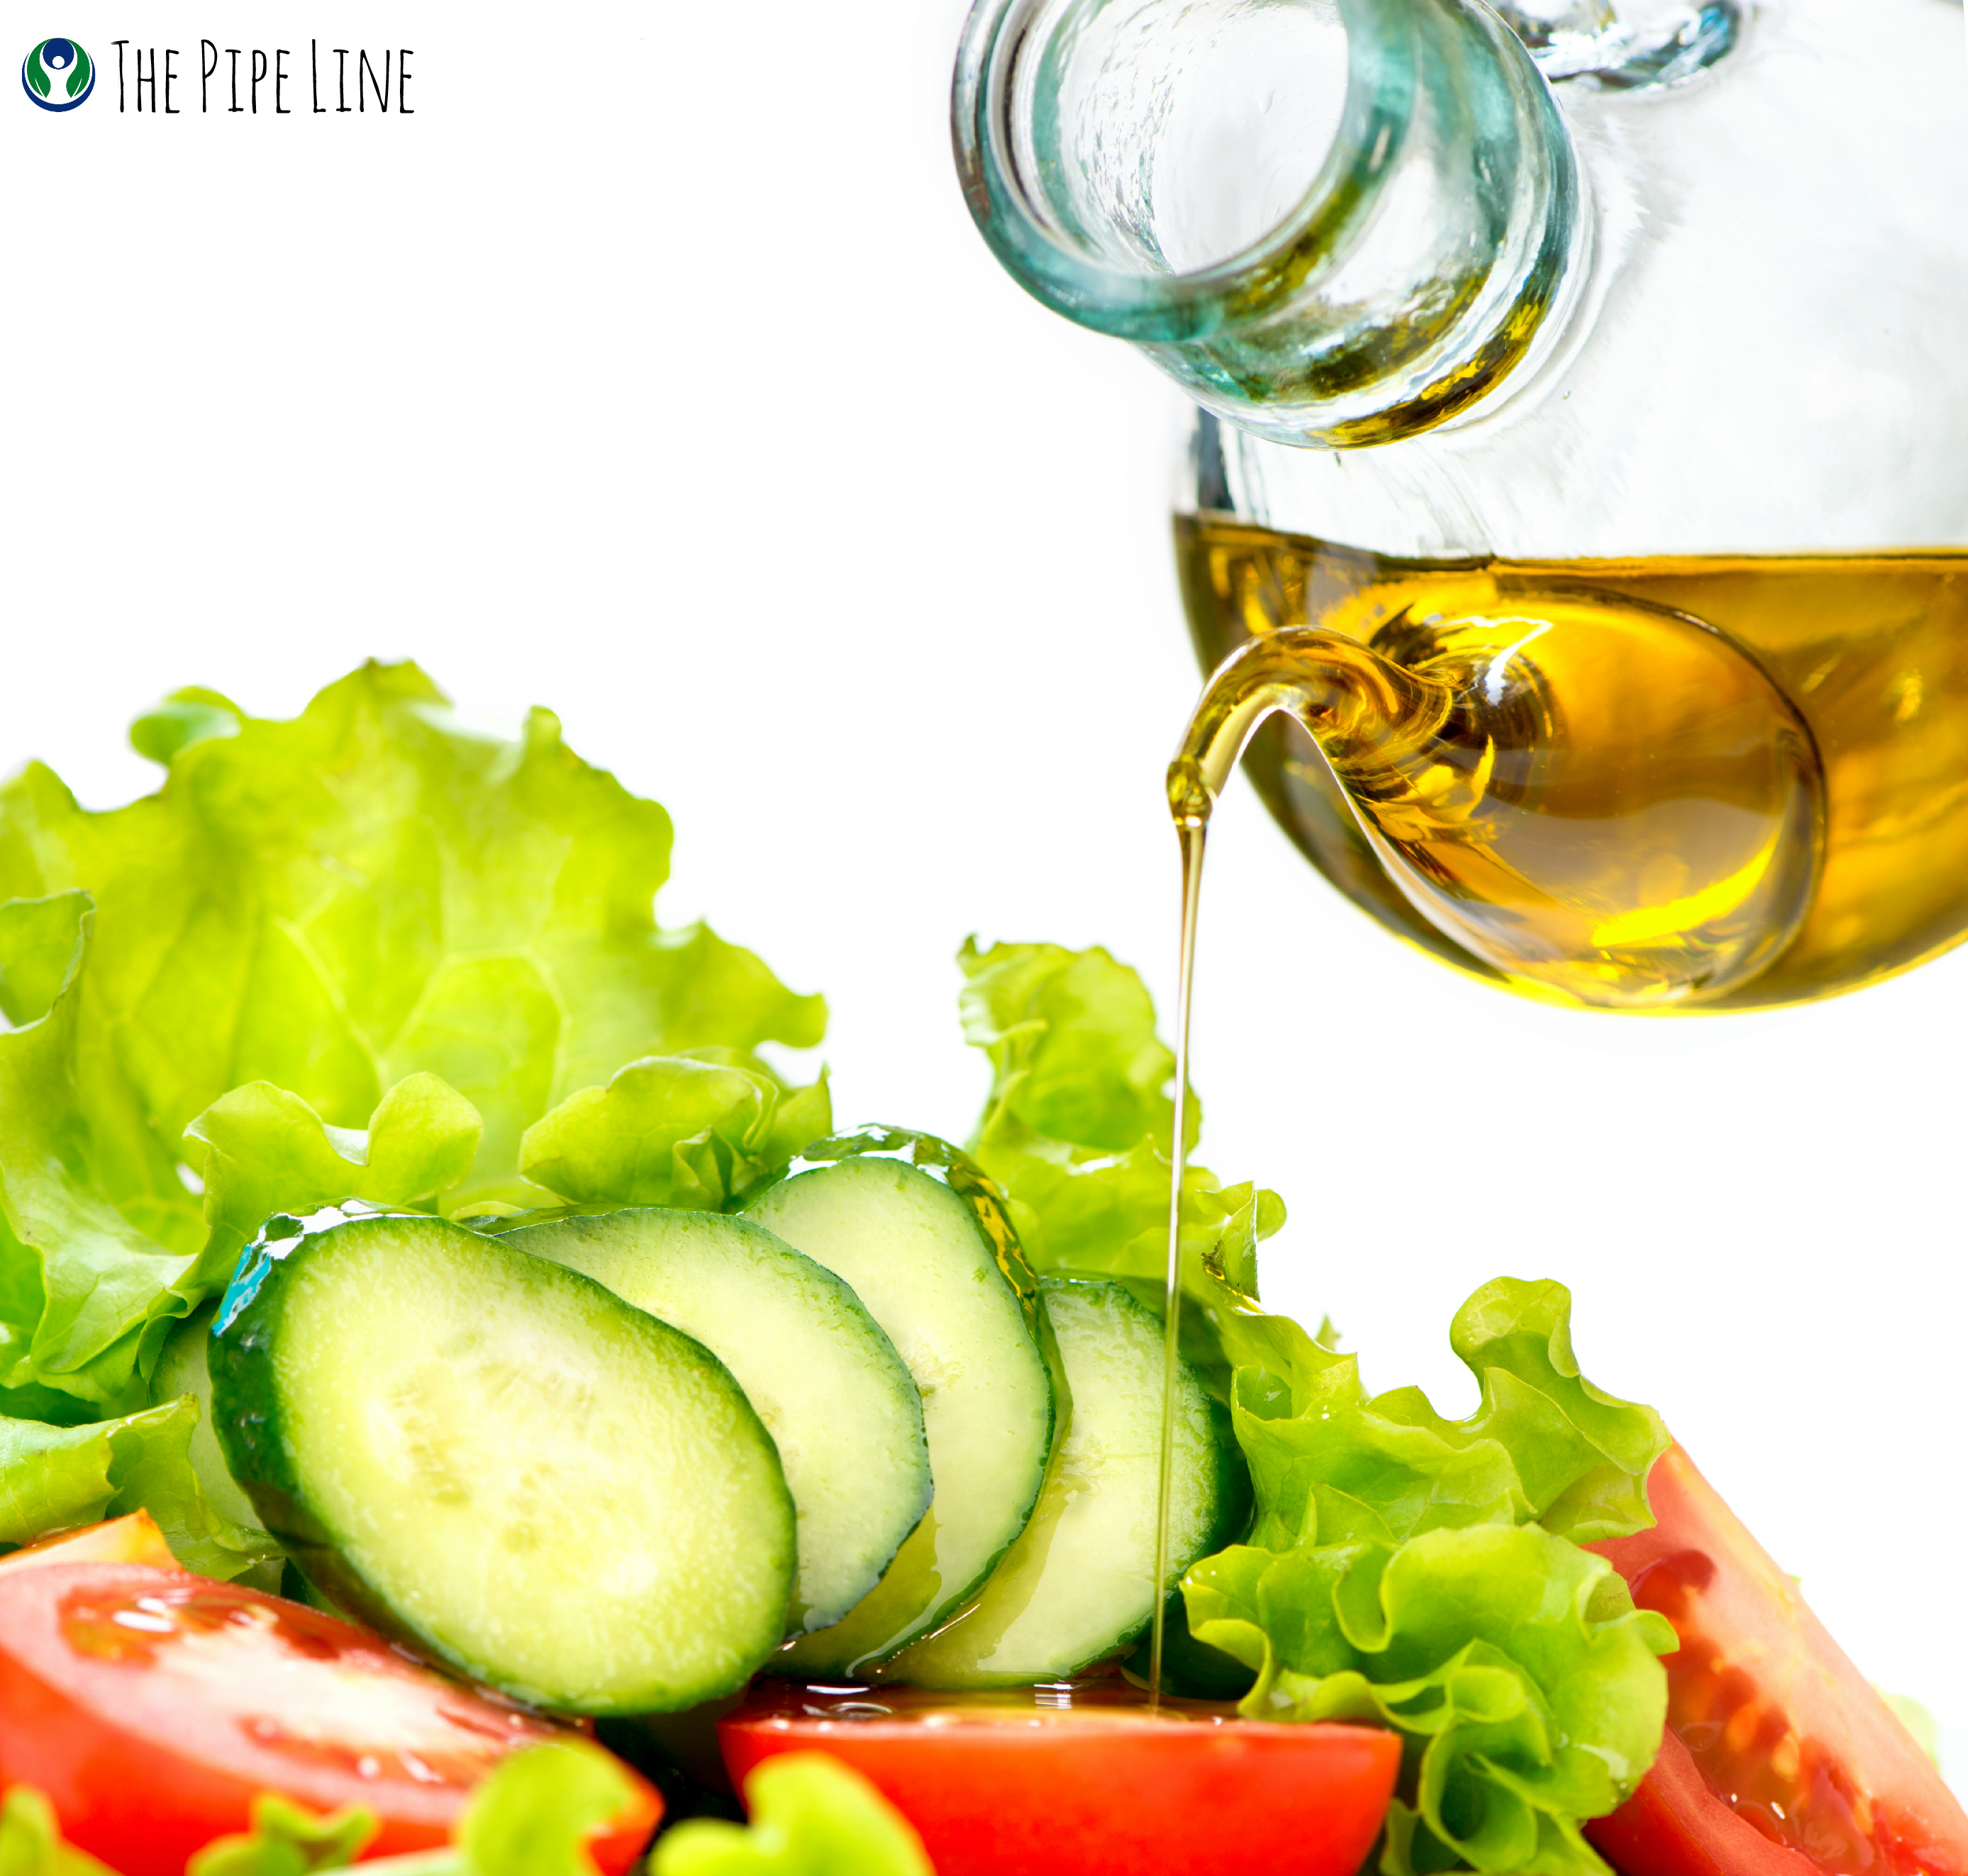 Piping Rock - The Pipe Line - 5 Ways to Get More Apple Cider Vinegar in Your Life - Salad Dressing